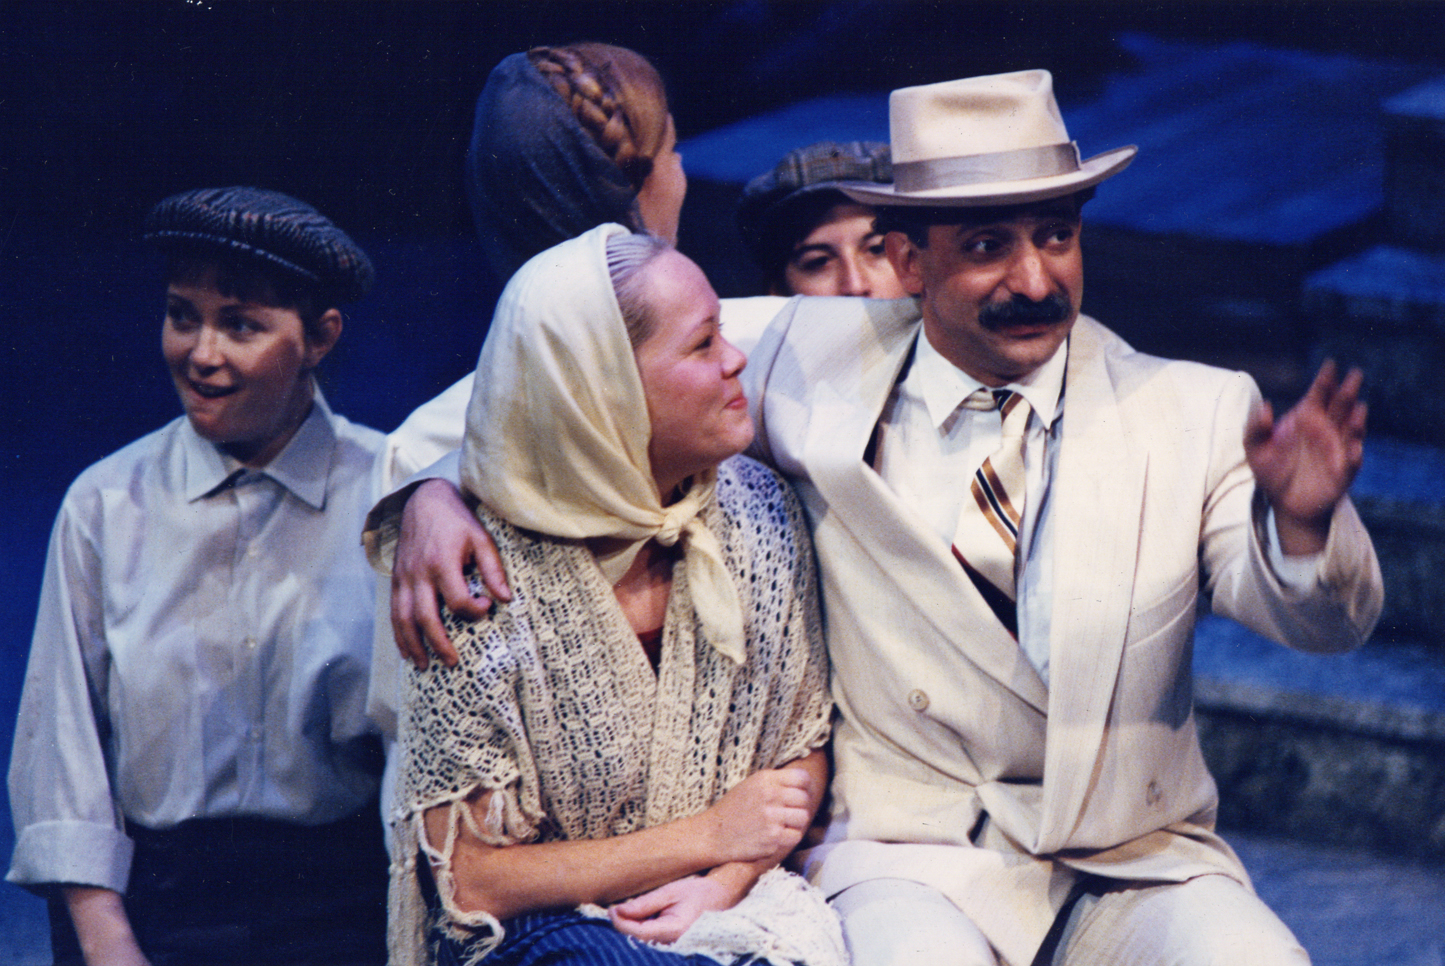 The Rich Man (November 1990) Production Image 1.jpg